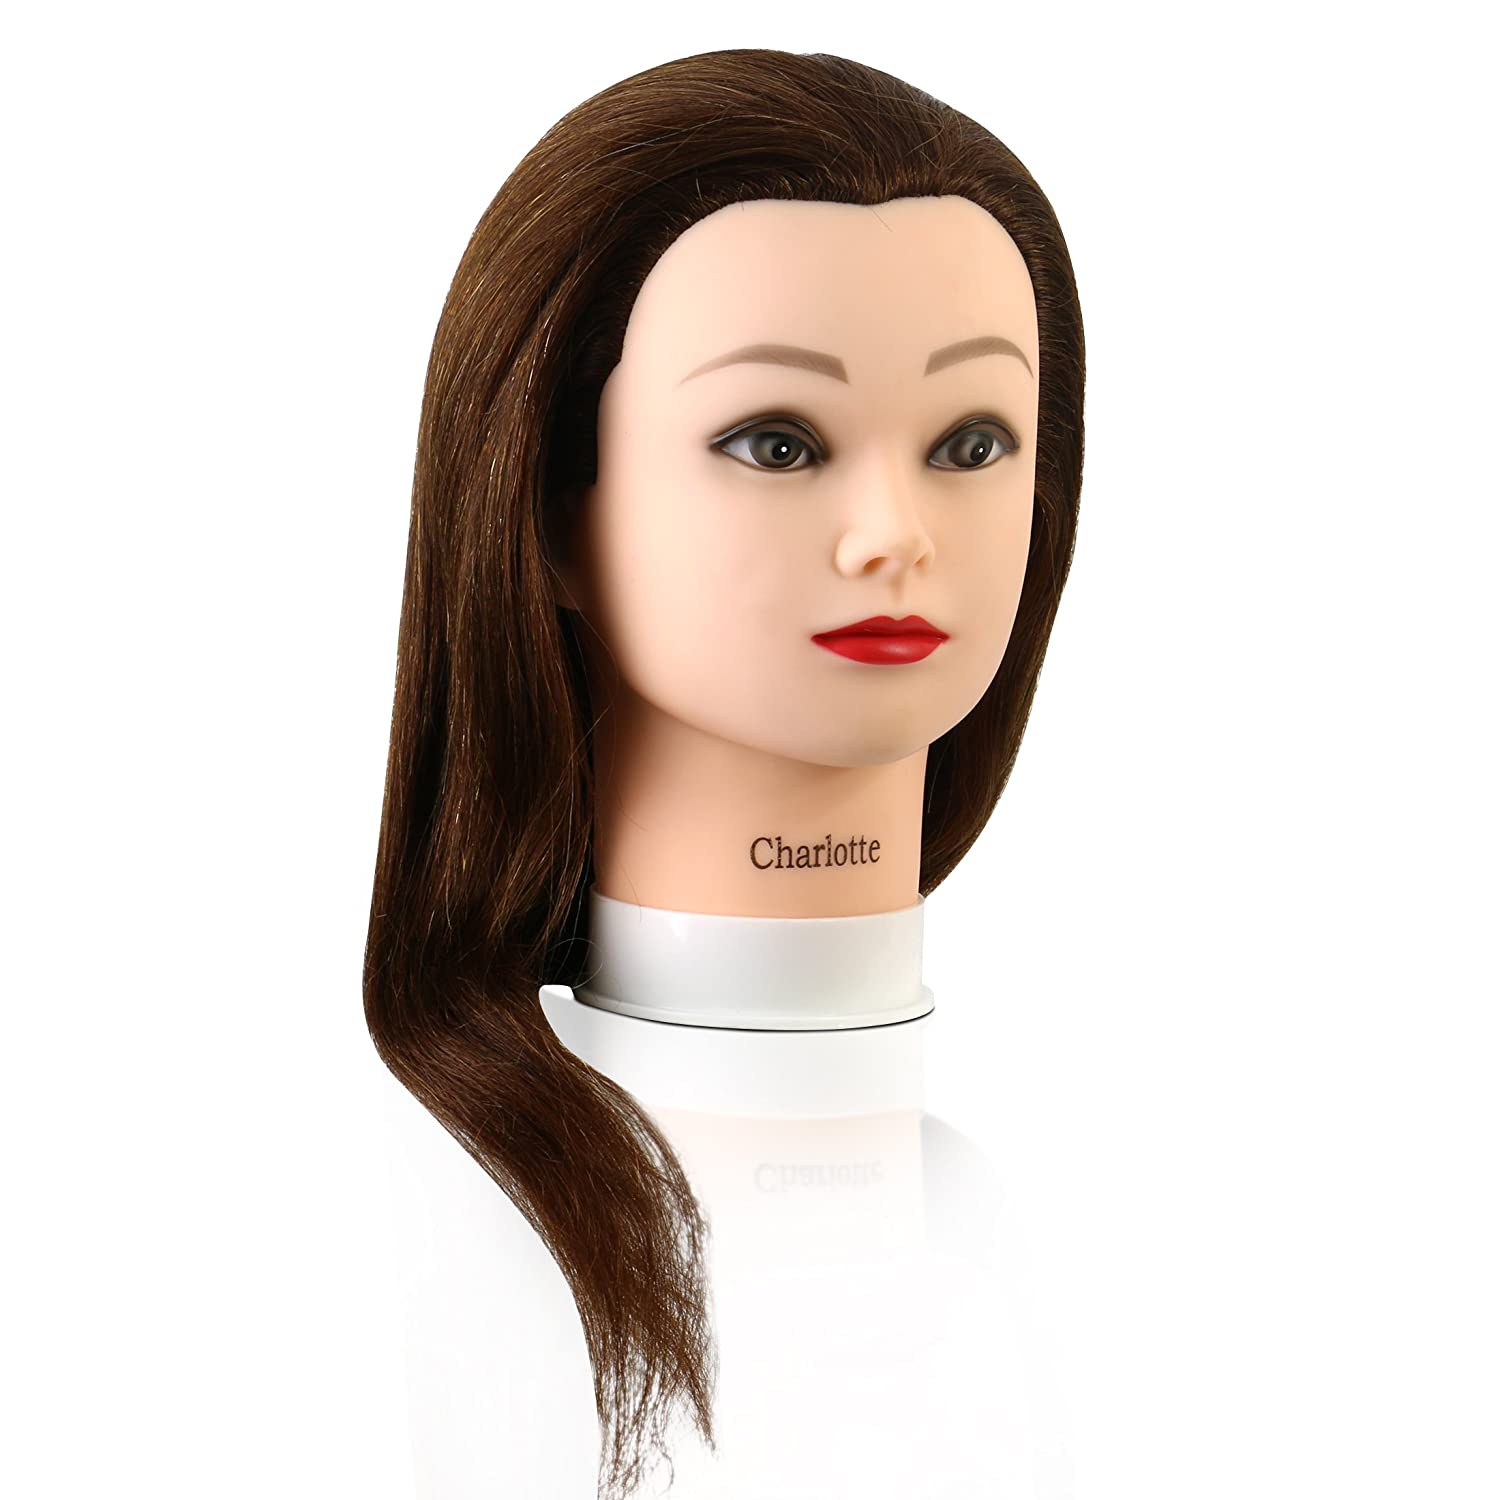 Mannequin Head with 100% Human Hair, 24 Inches Long, Auburn Shade, Hands-On Practice for Cosmetology and Hairdressing Students, by Adolfo Design